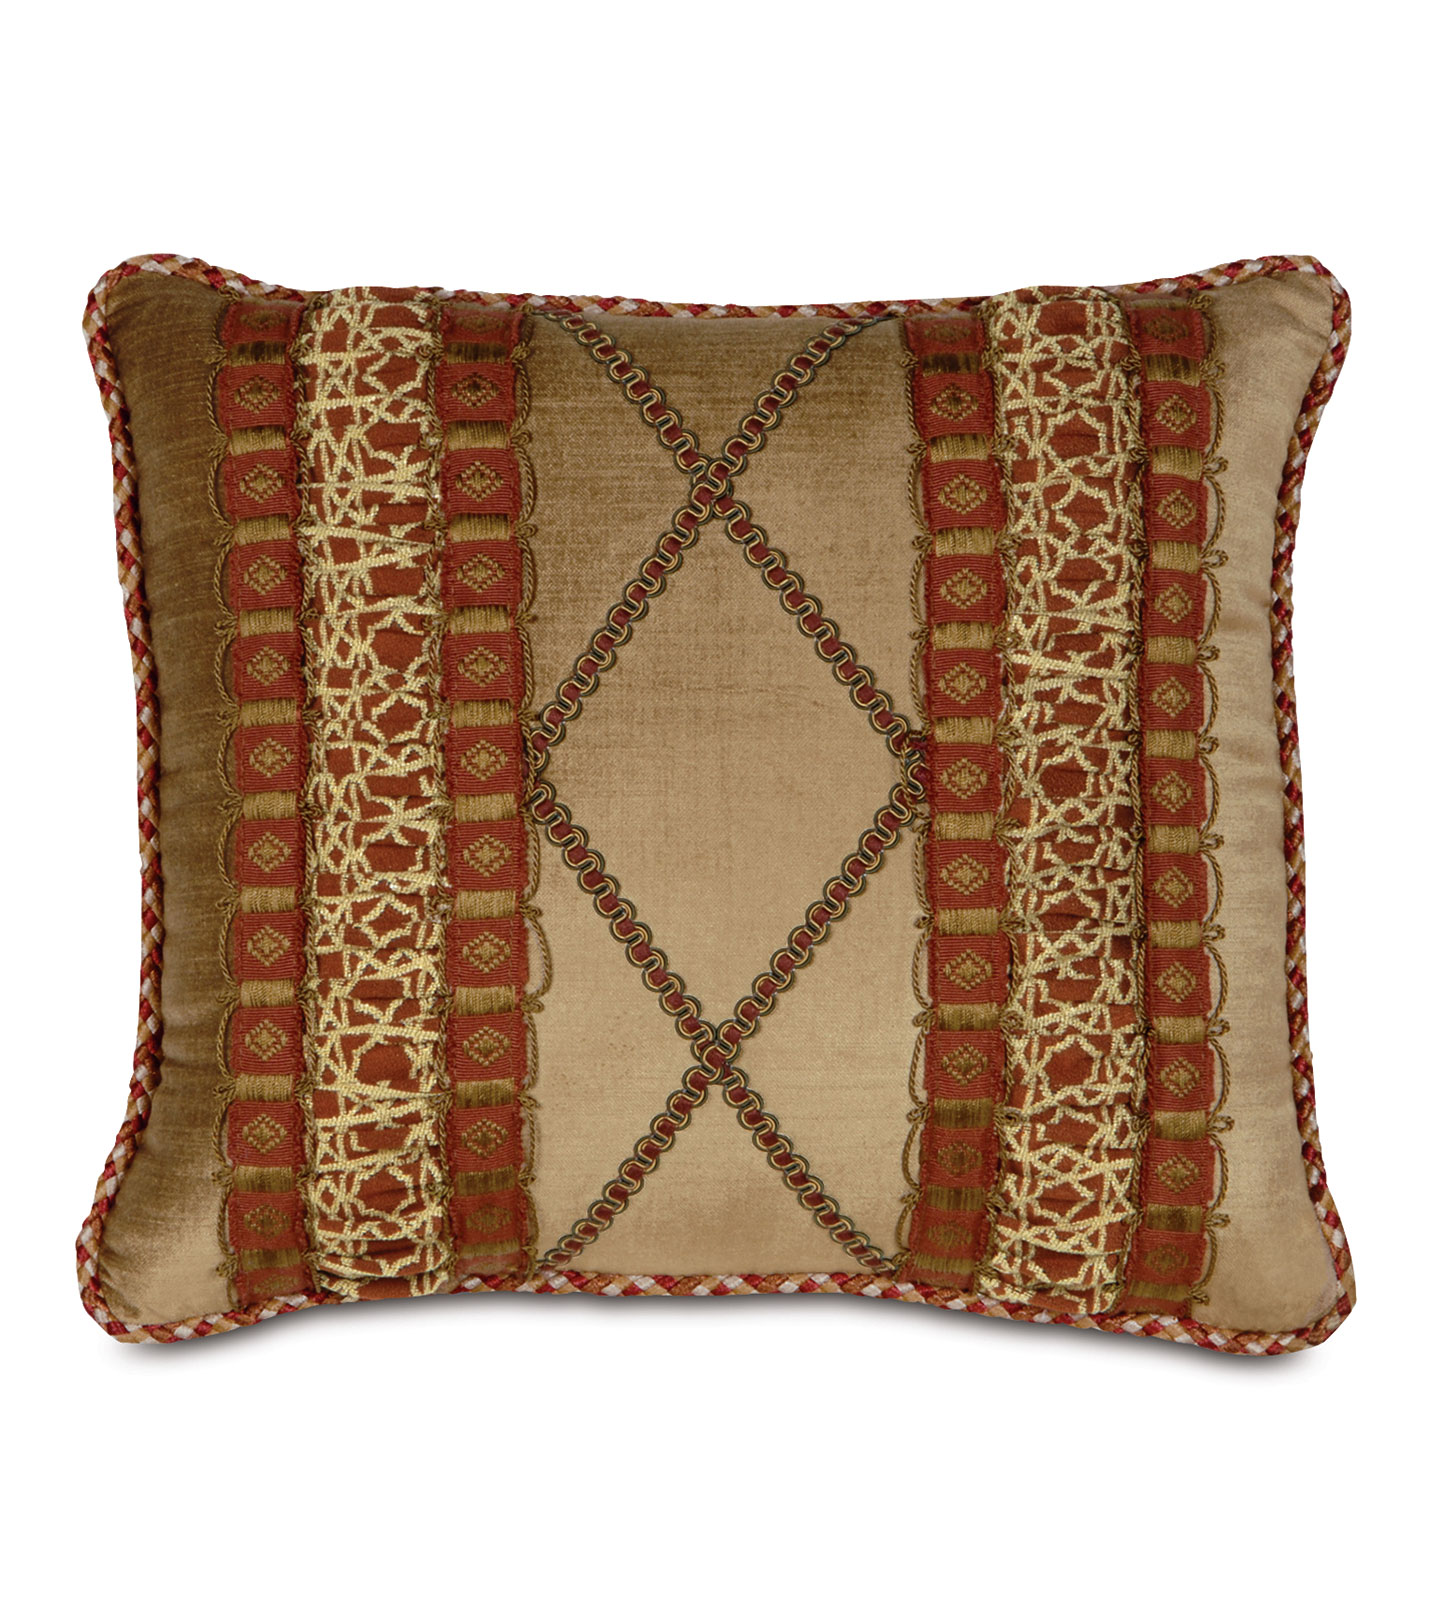 Decorative Pillow Inserts Down : Luxury Bedding by Eastern Accents - LUCERNE GOLD W/RUCHED INSERTS